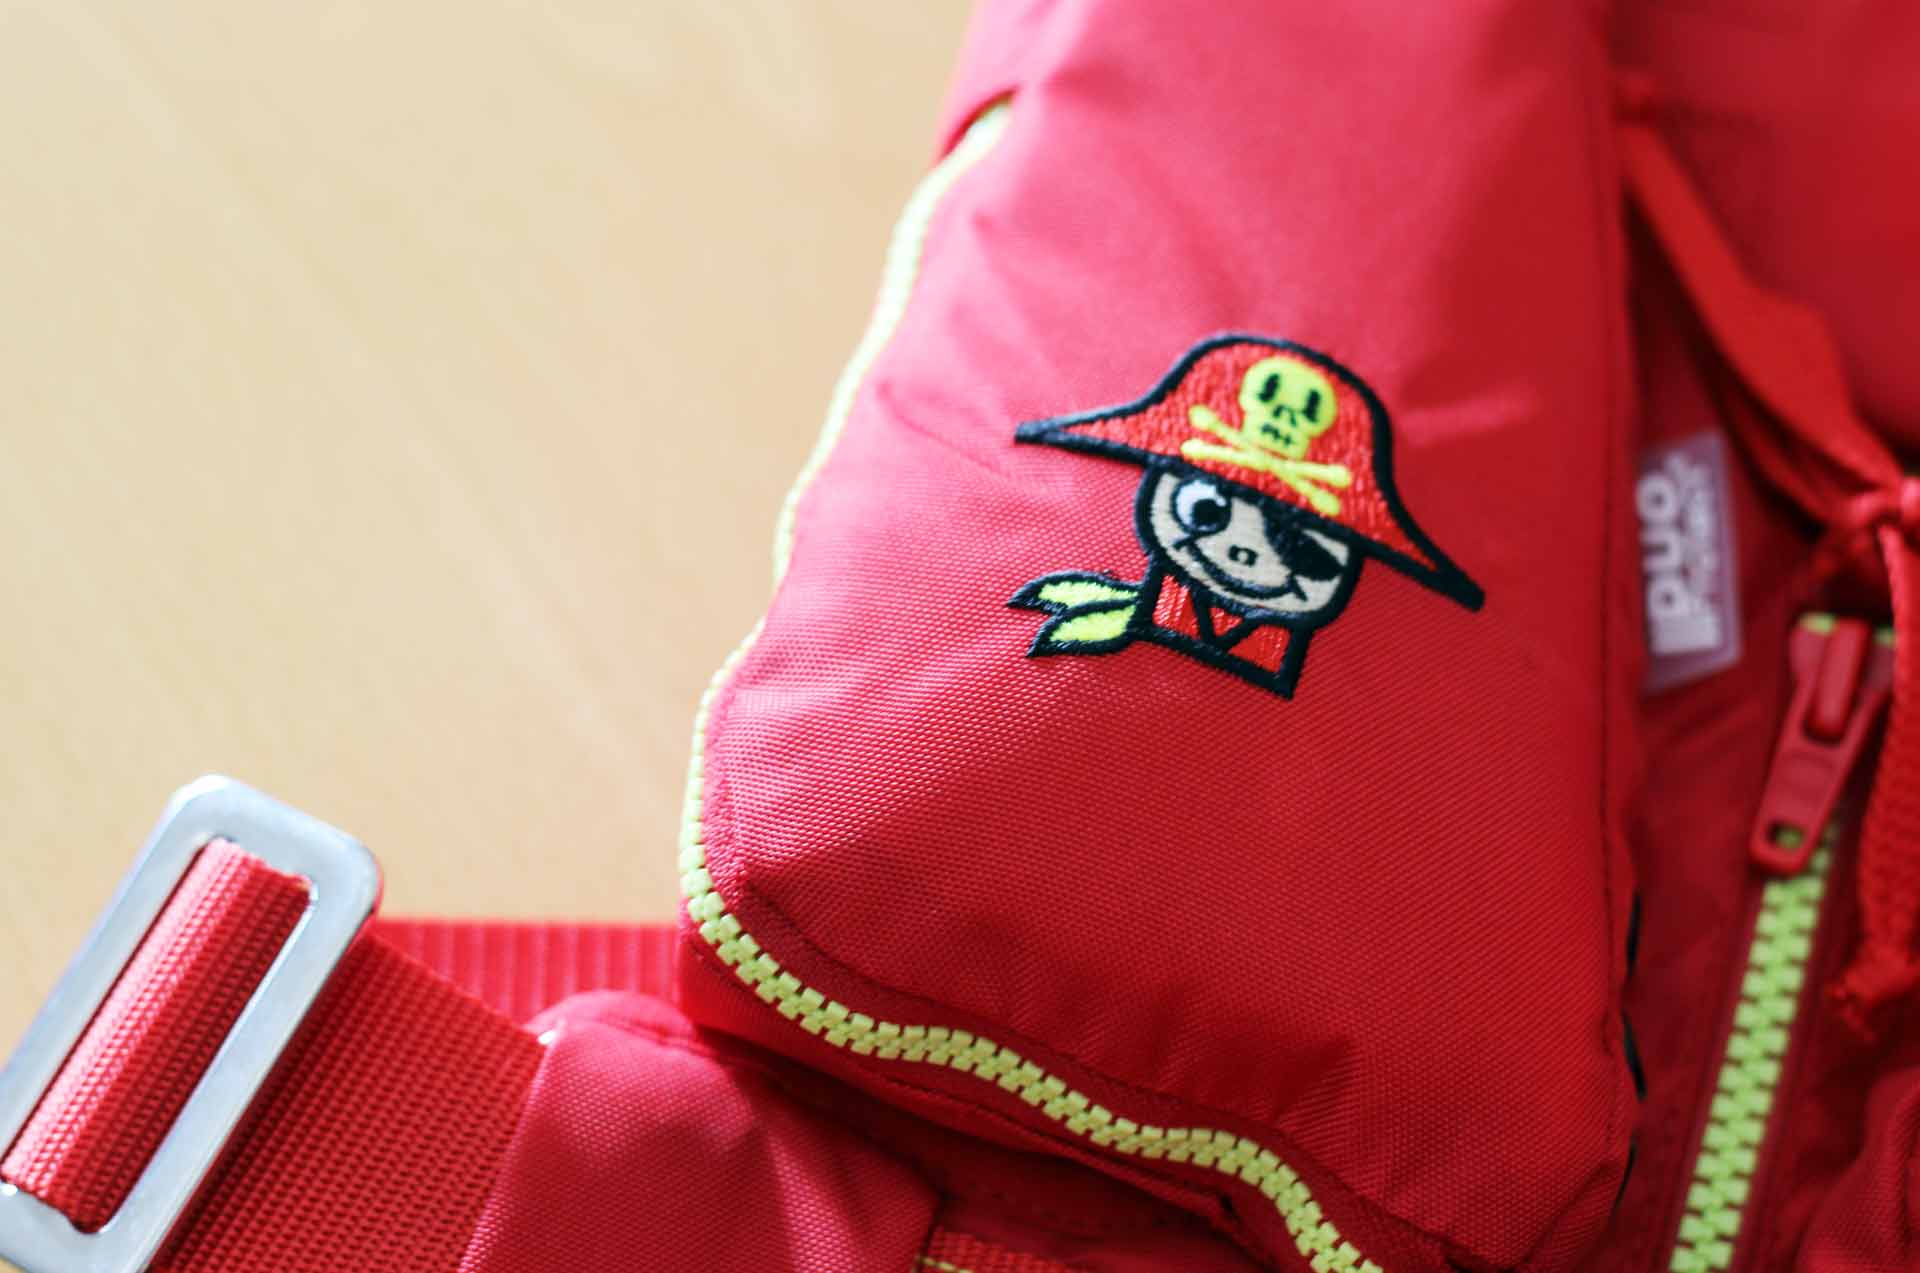 Exclusively for little Pirates: The MINI life jacket by SECUMAR